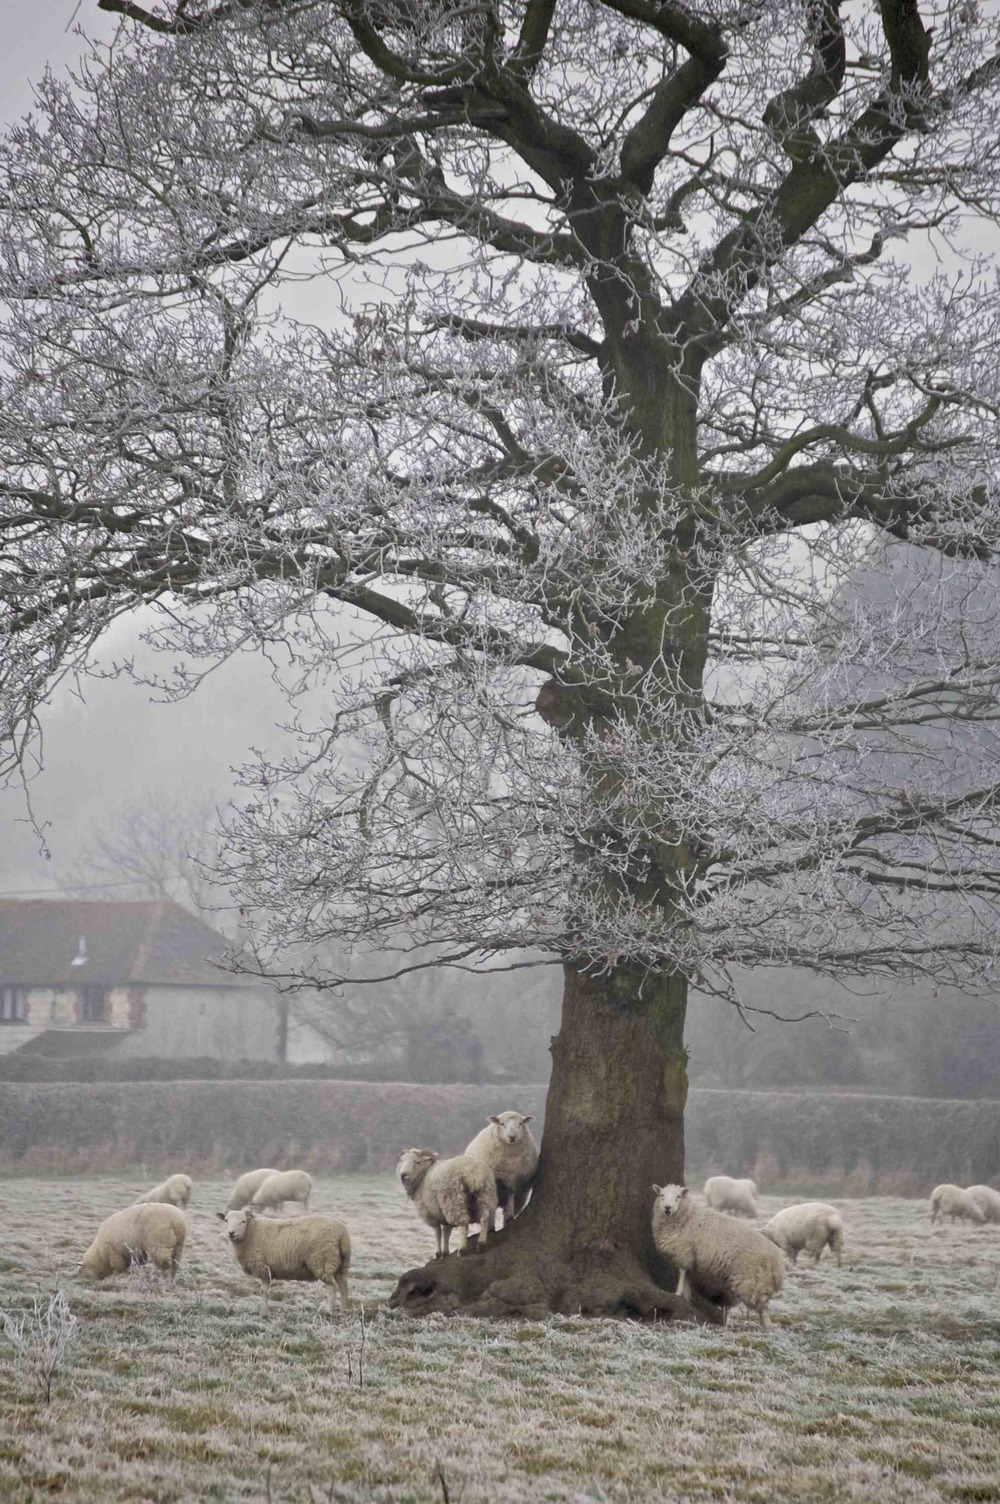 Sheep under frosted tree